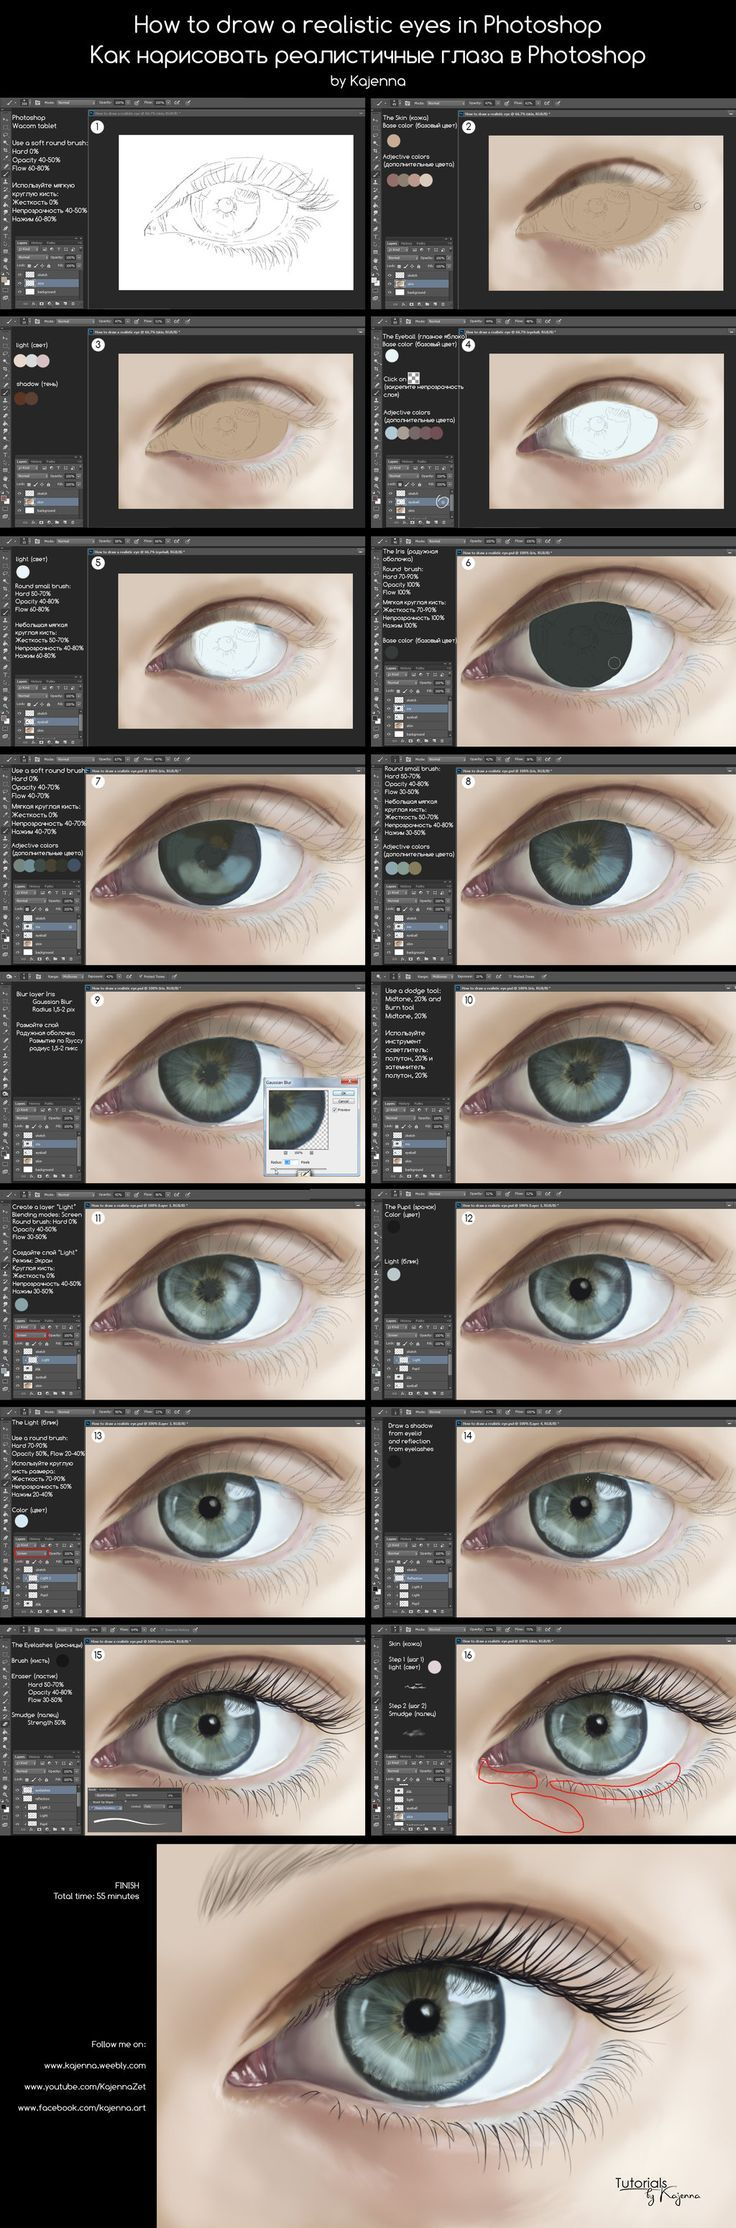 1000 ideas about digital painting tutorials on pinterest how to draw a realistic eyes in photoshop by kajenna on deviantart find this pin and more on digital art tutorials baditri Image collections